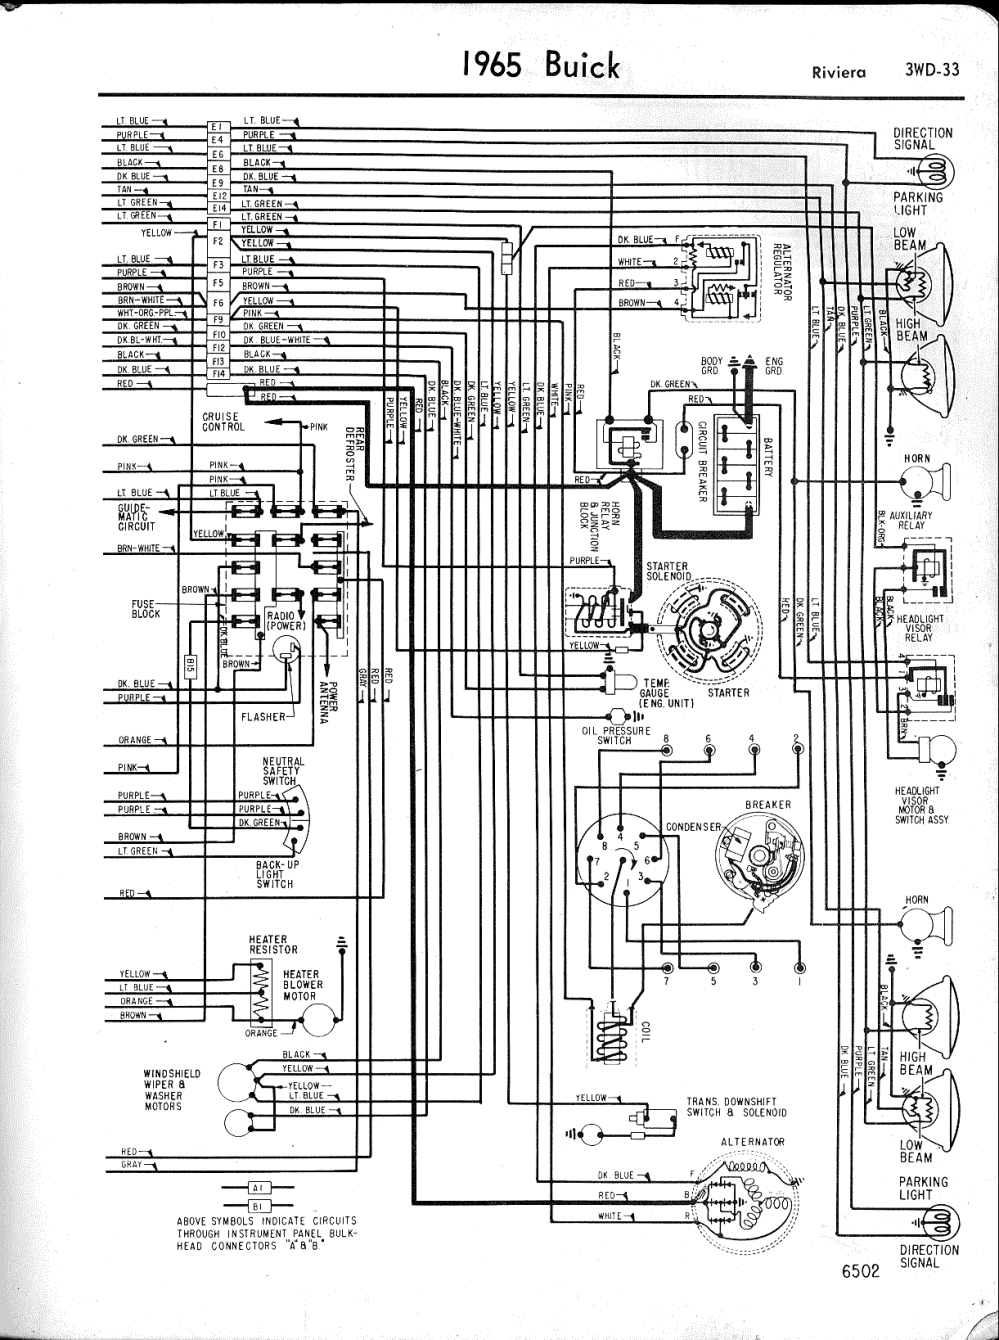 medium resolution of buick wiring diagrams 1957 1965 wiring diagrams 1965 buick wildcat 1965 riviera right half 64 buick